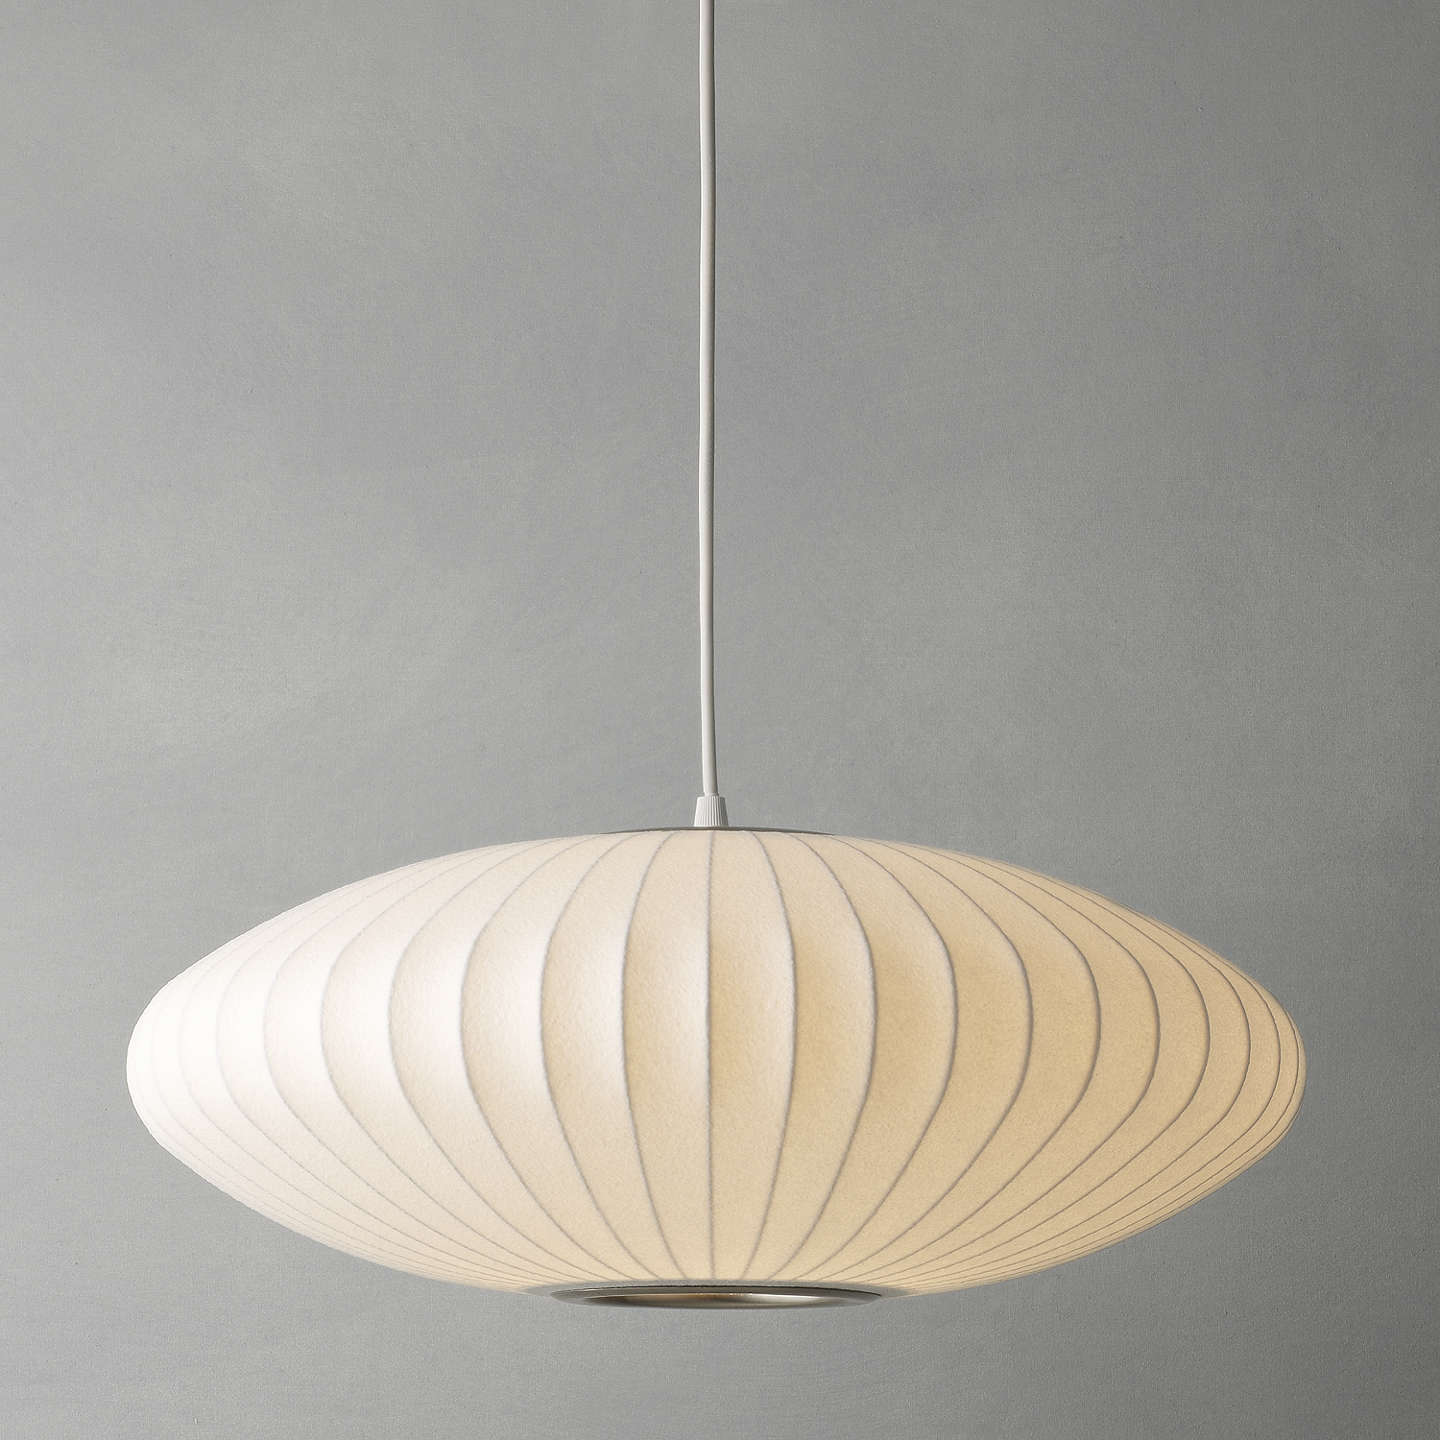 george nelson bubble lamp. BuyGeorge Nelson Bubble Saucer Ceiling Light, Medium Online At Johnlewis.com George Lamp _